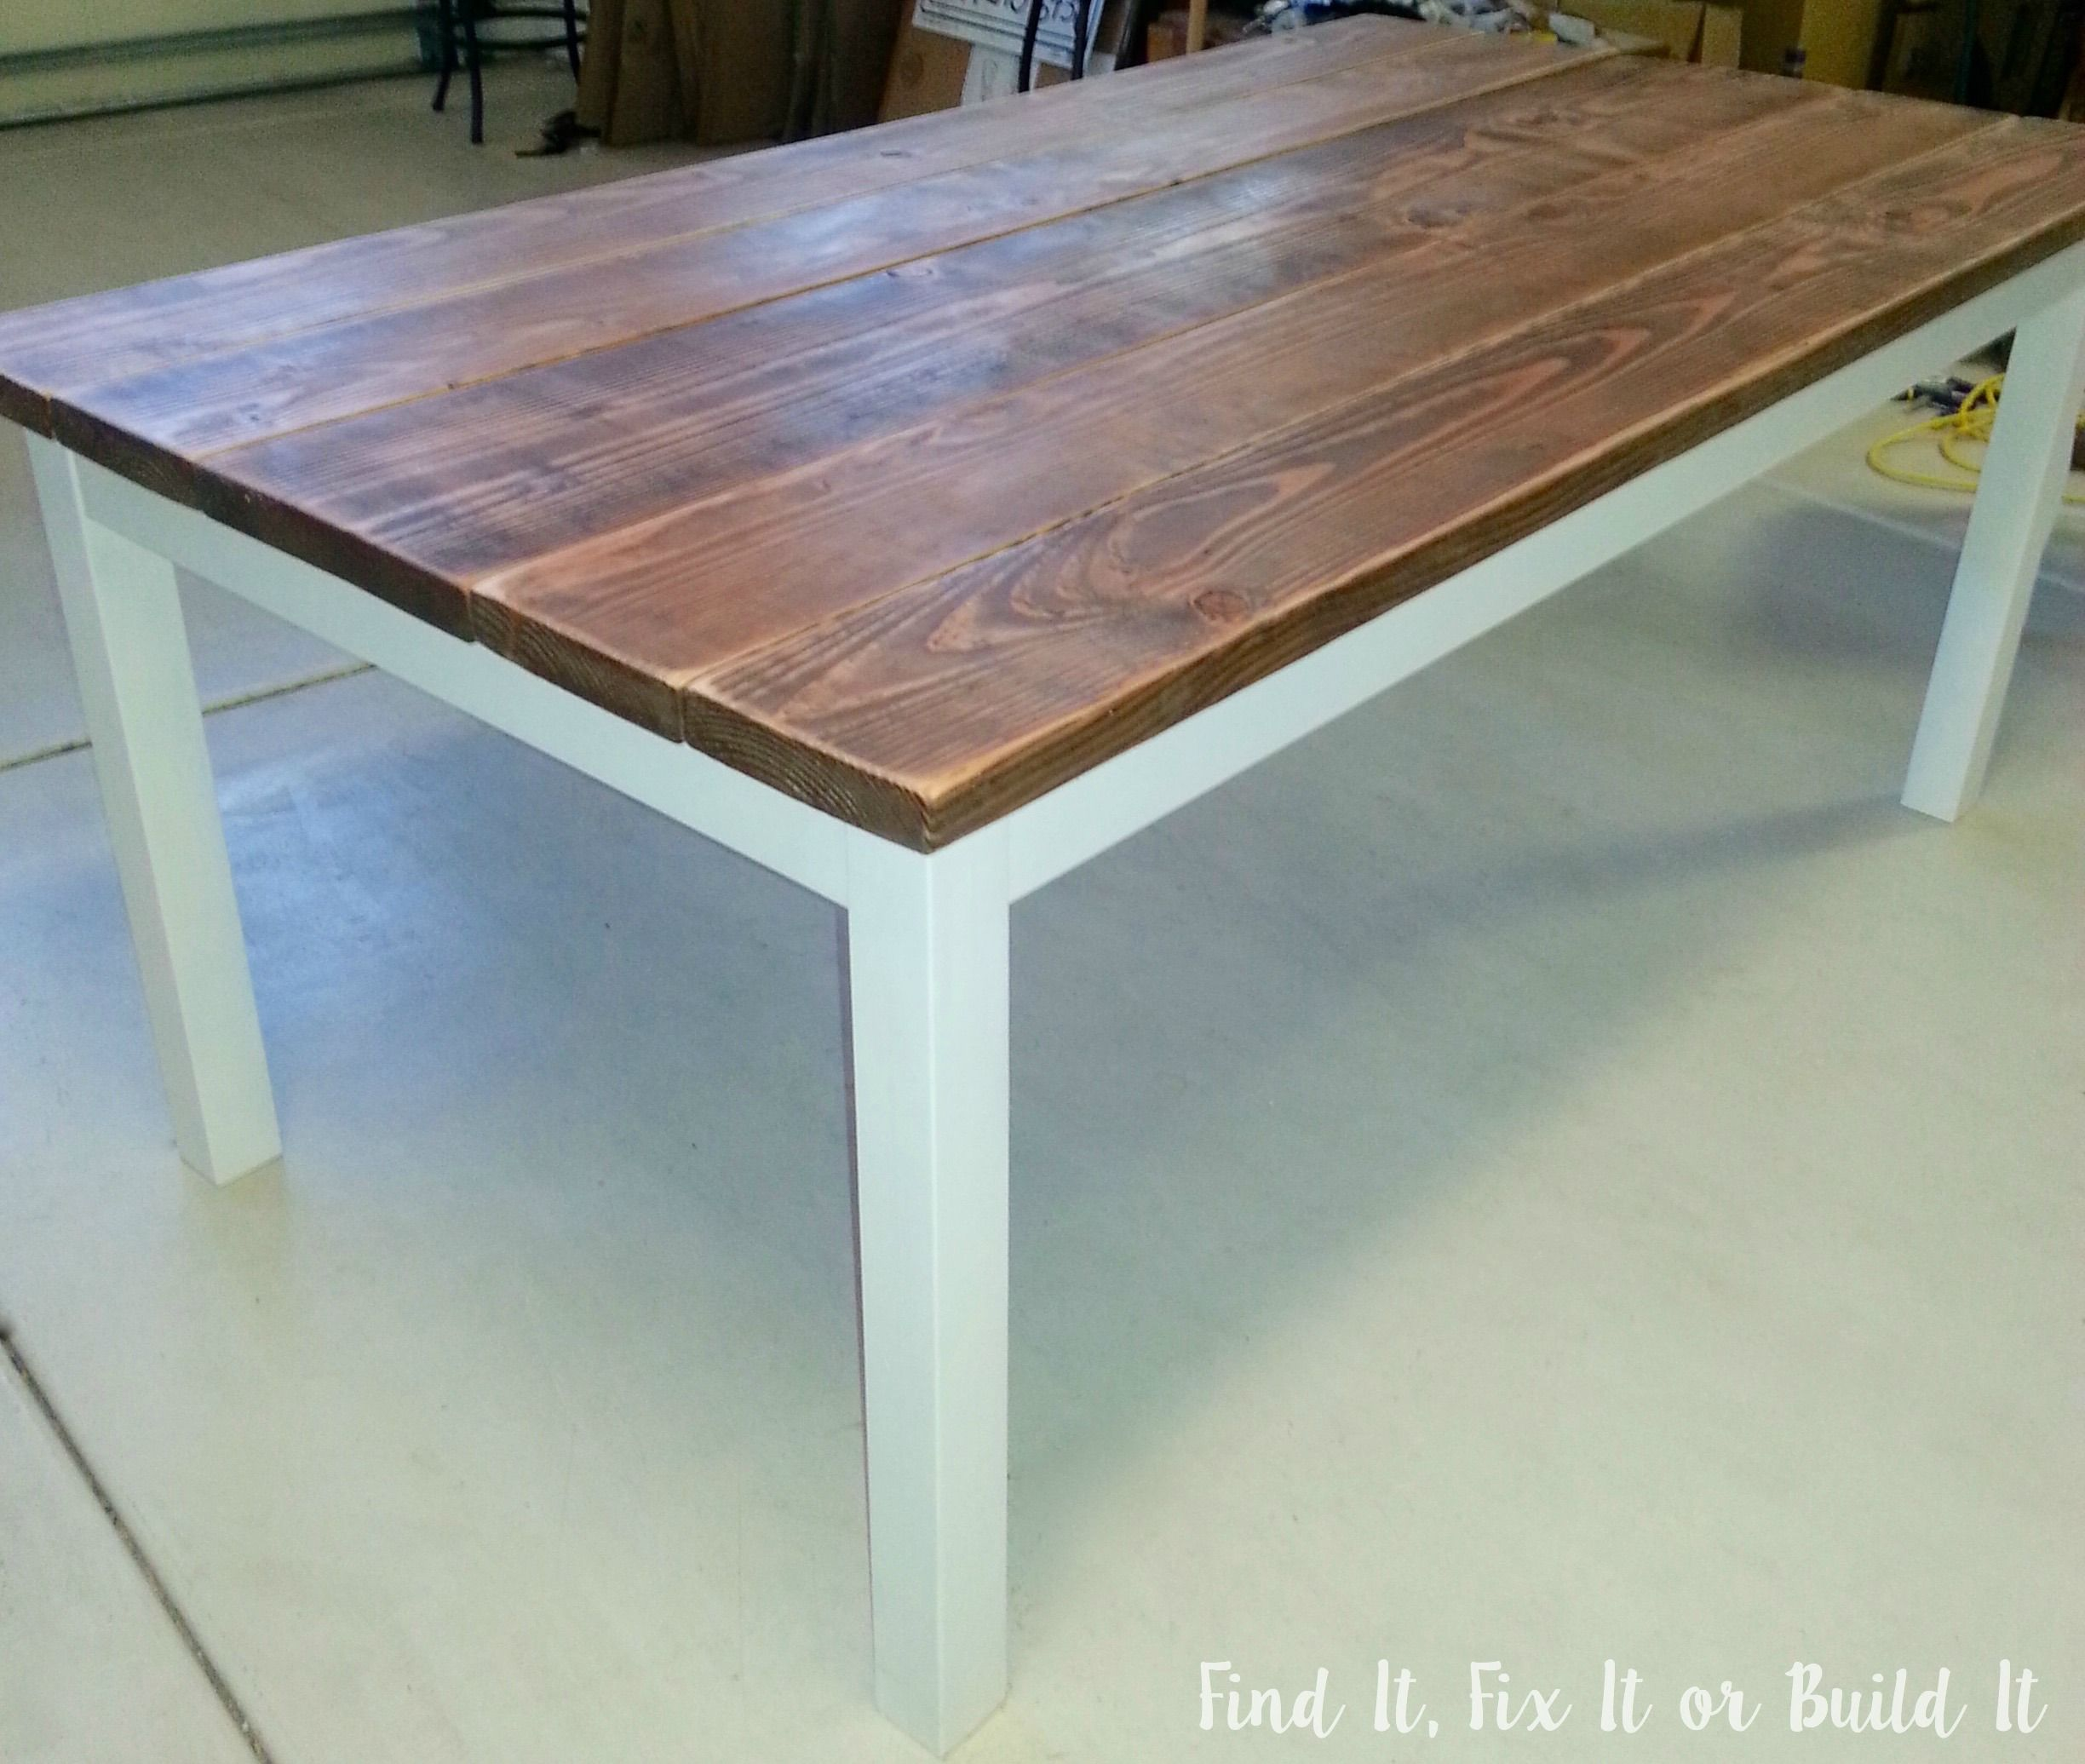 Ikea Dining Table Hack | Find It, Fix It or Build It | Home Sweet ...